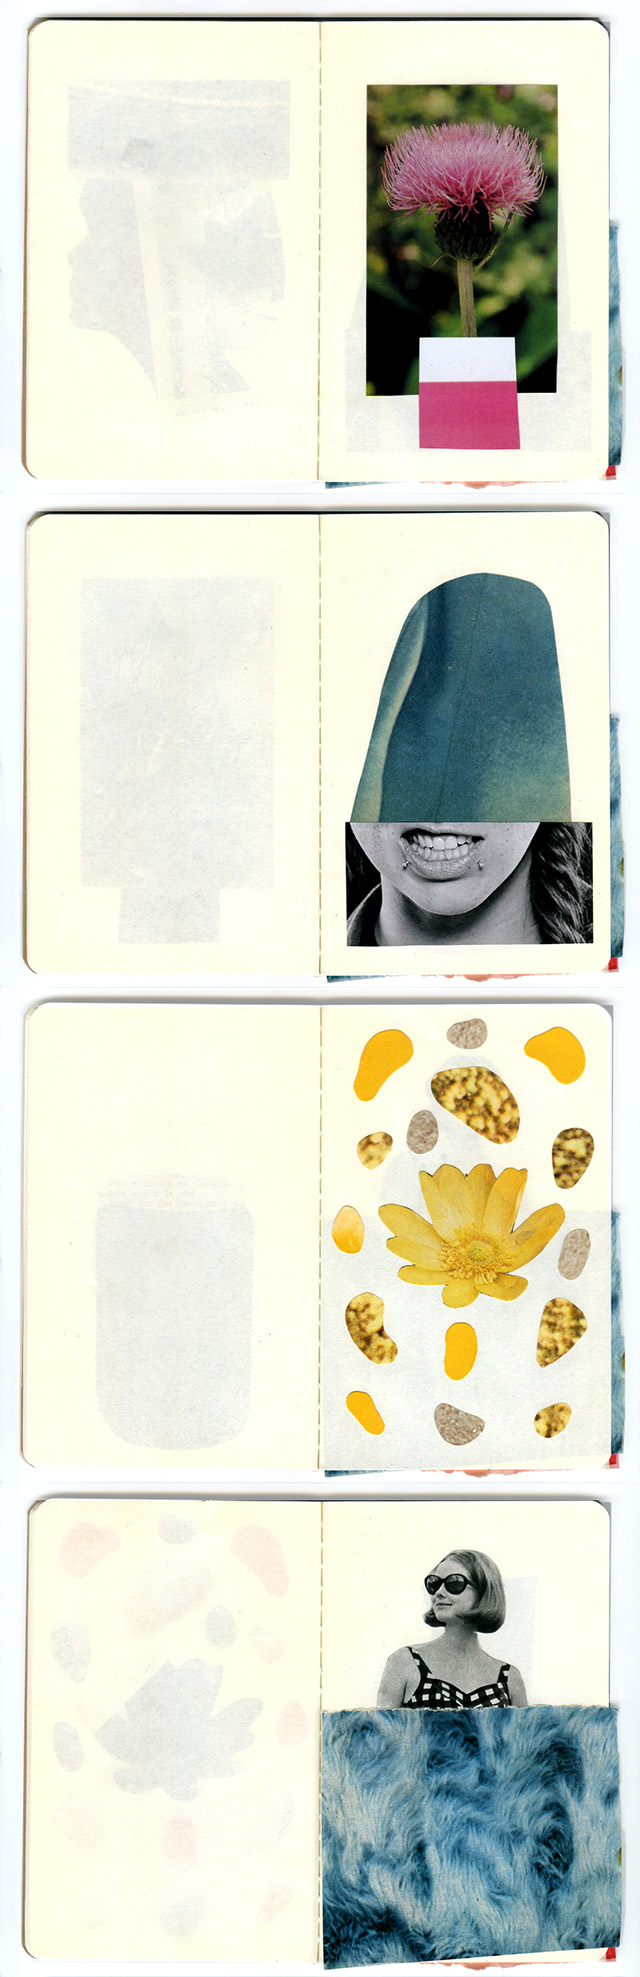 collage sketchbook pages 5-8 by laura redburn